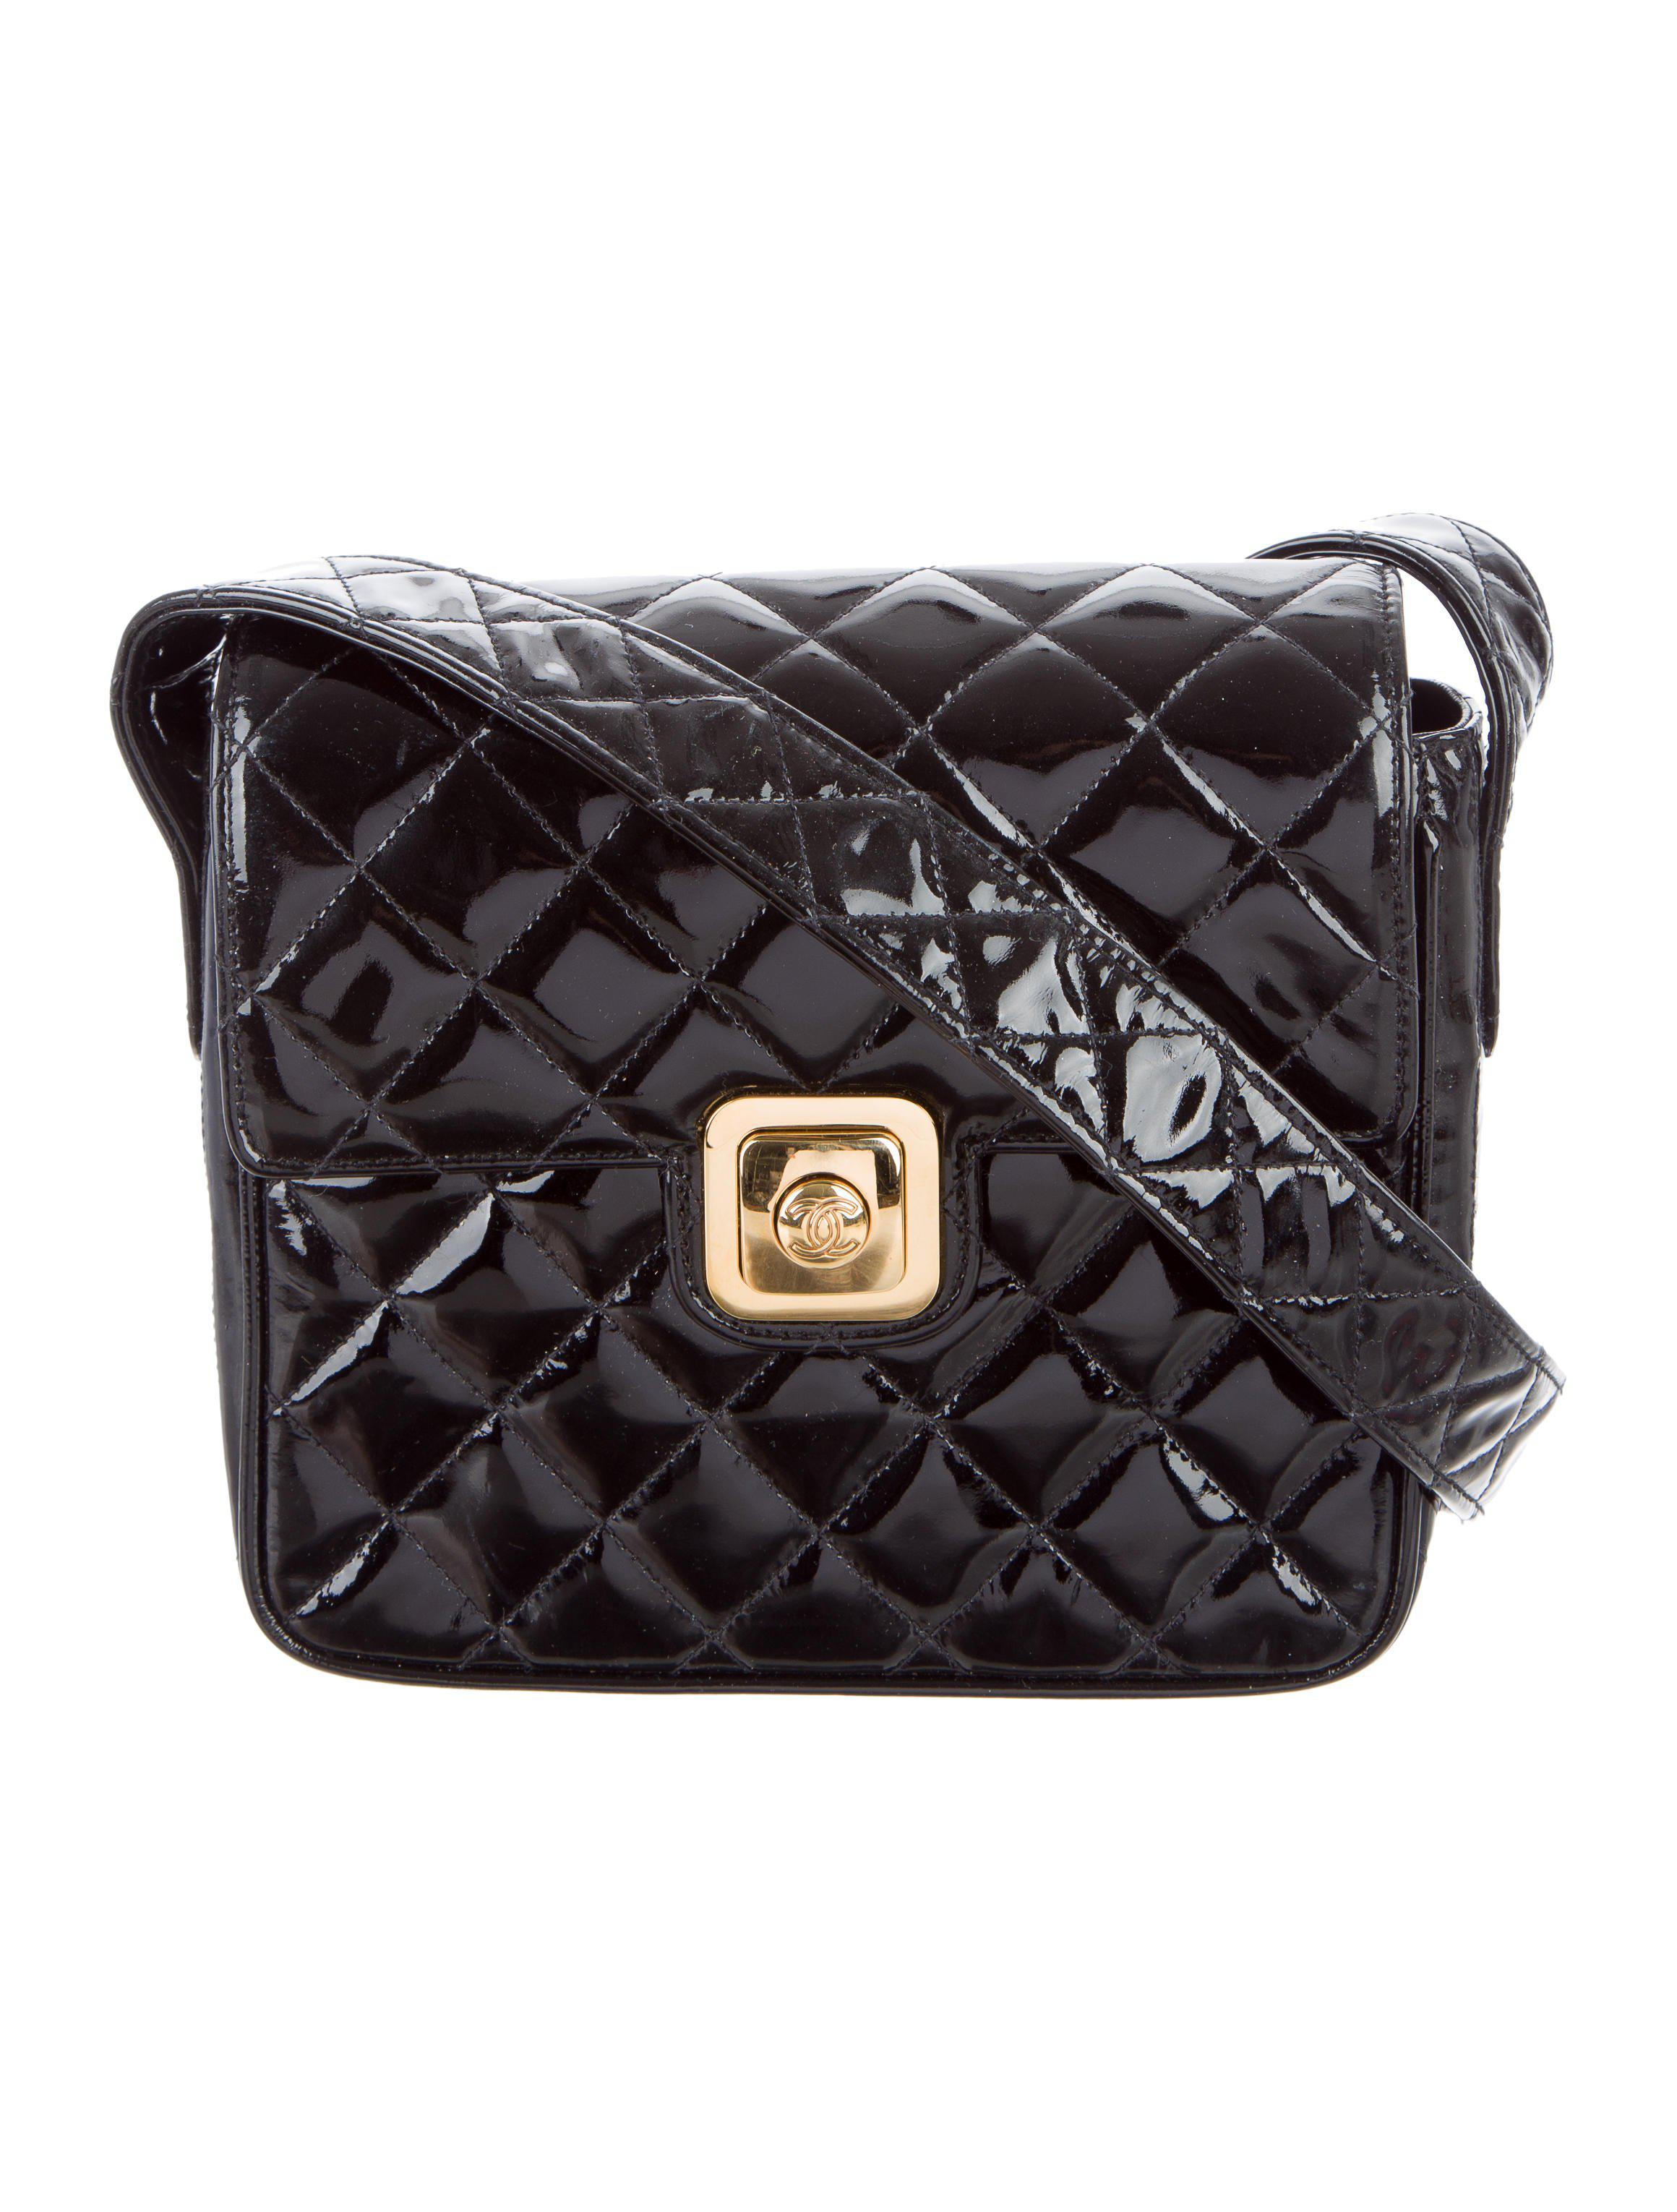 1e2125fa5fb3 Lyst - Chanel Vintage Patent Quilted Shoulder Bag Black in Metallic